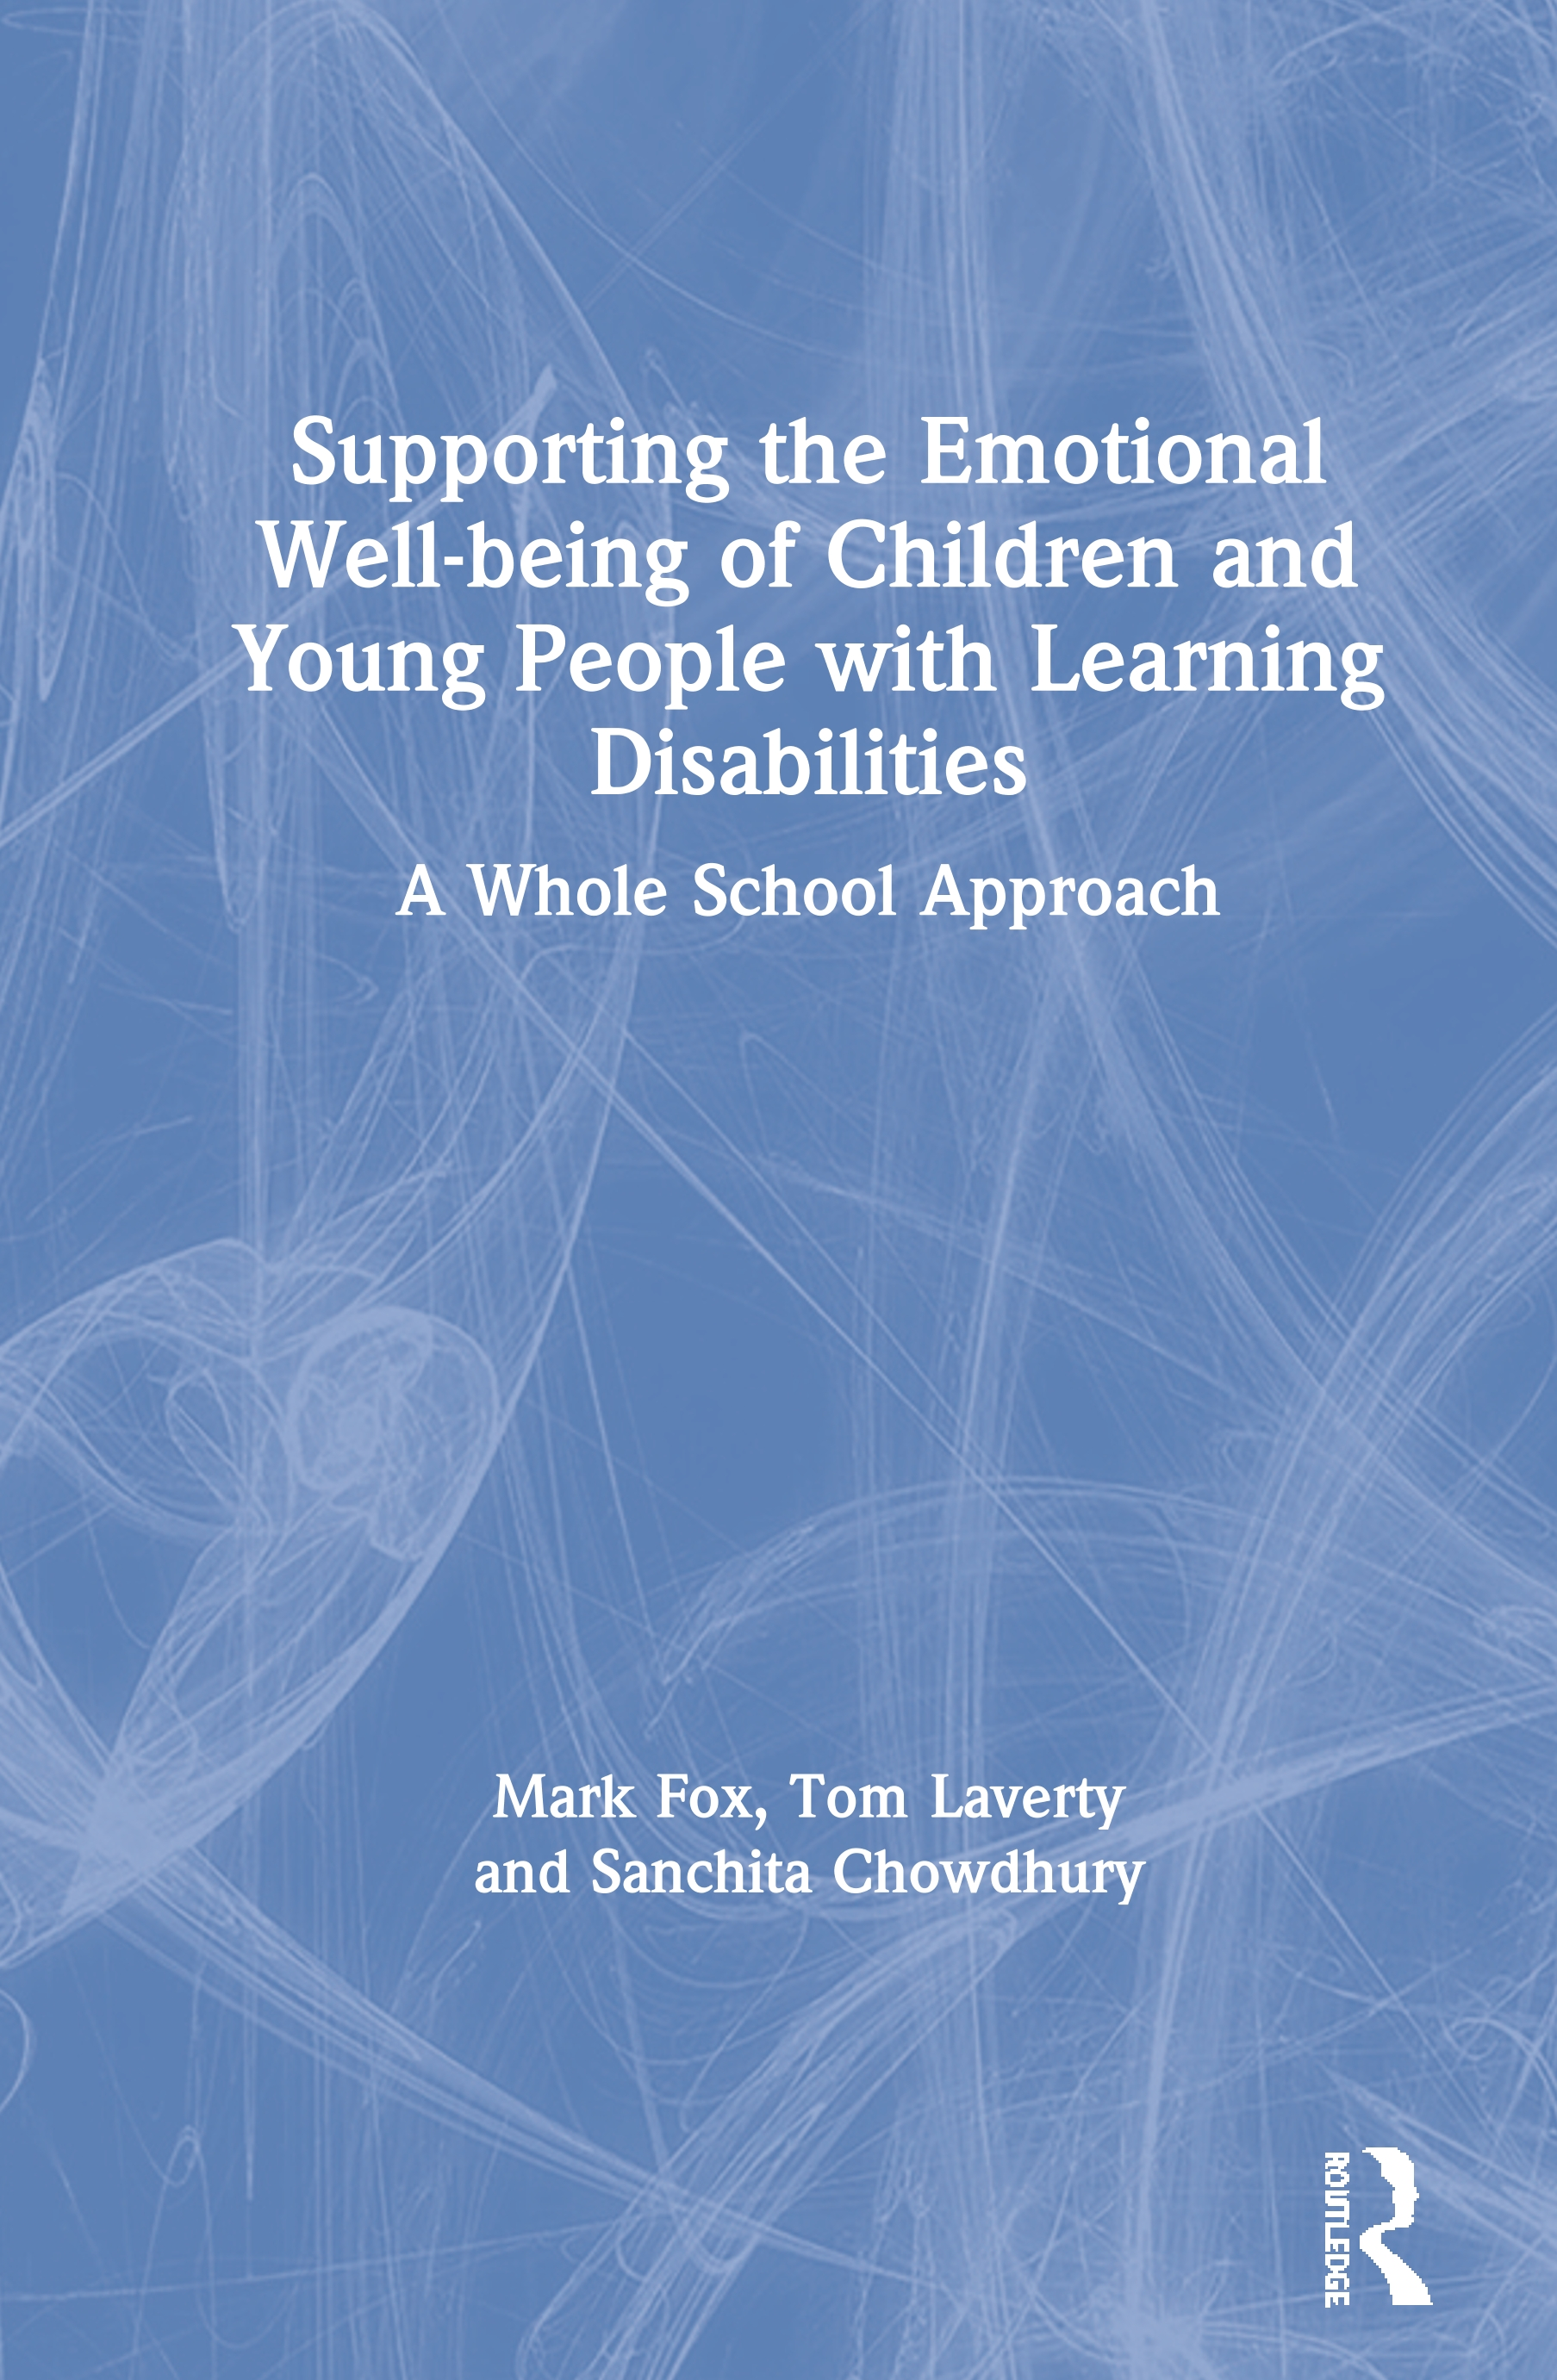 Supporting the Emotional Well-being of Children and Young People with Learning Disabilities